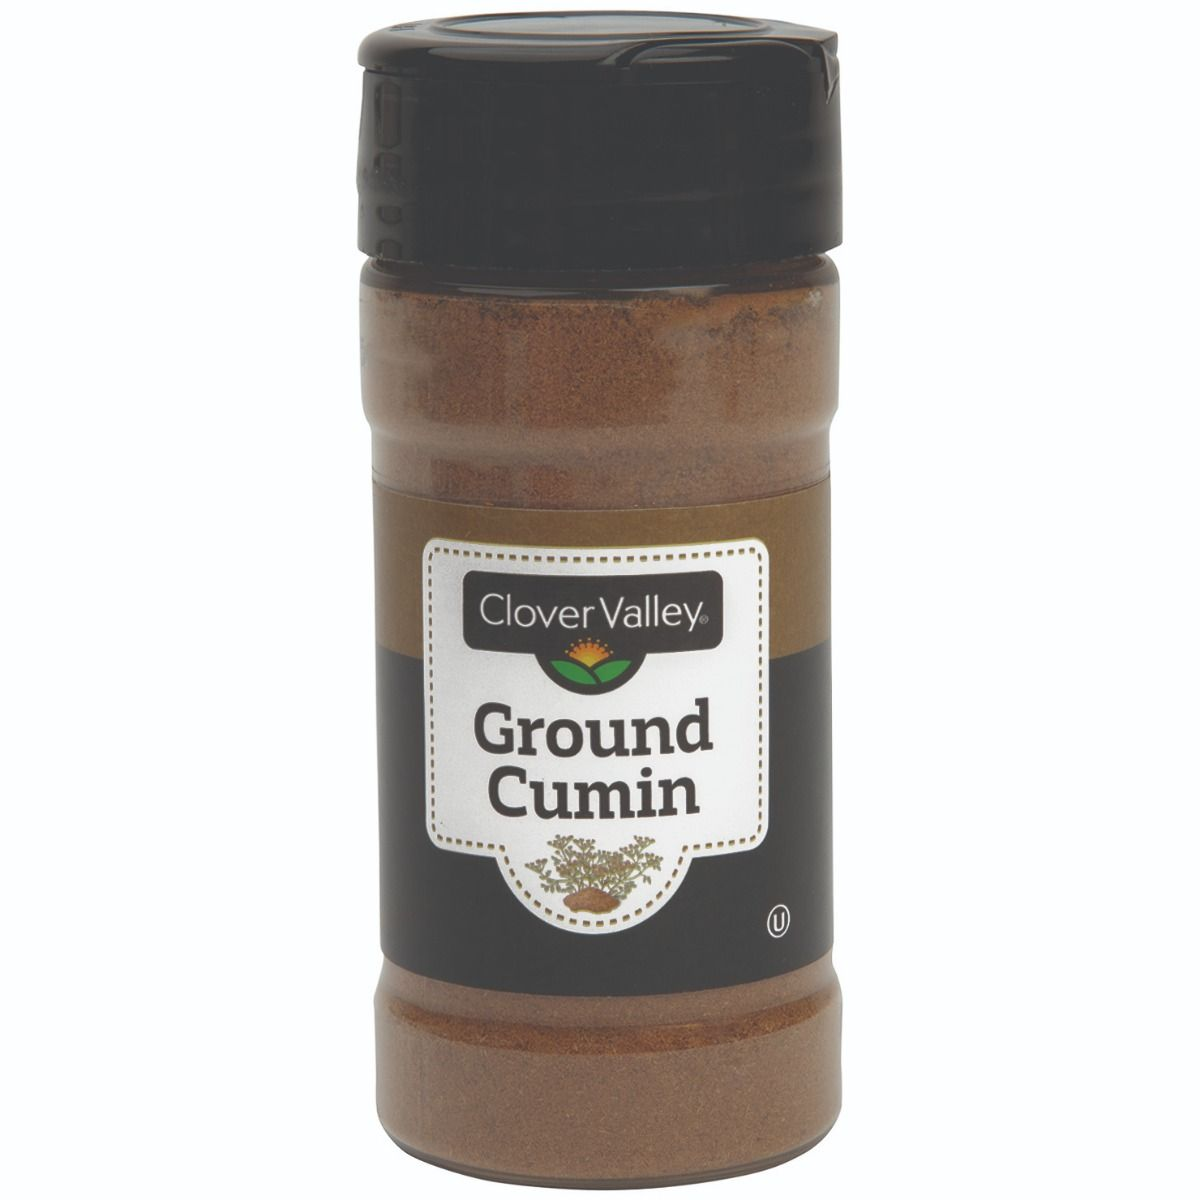 Clover Valley Ground Cumin, 2 Oz.